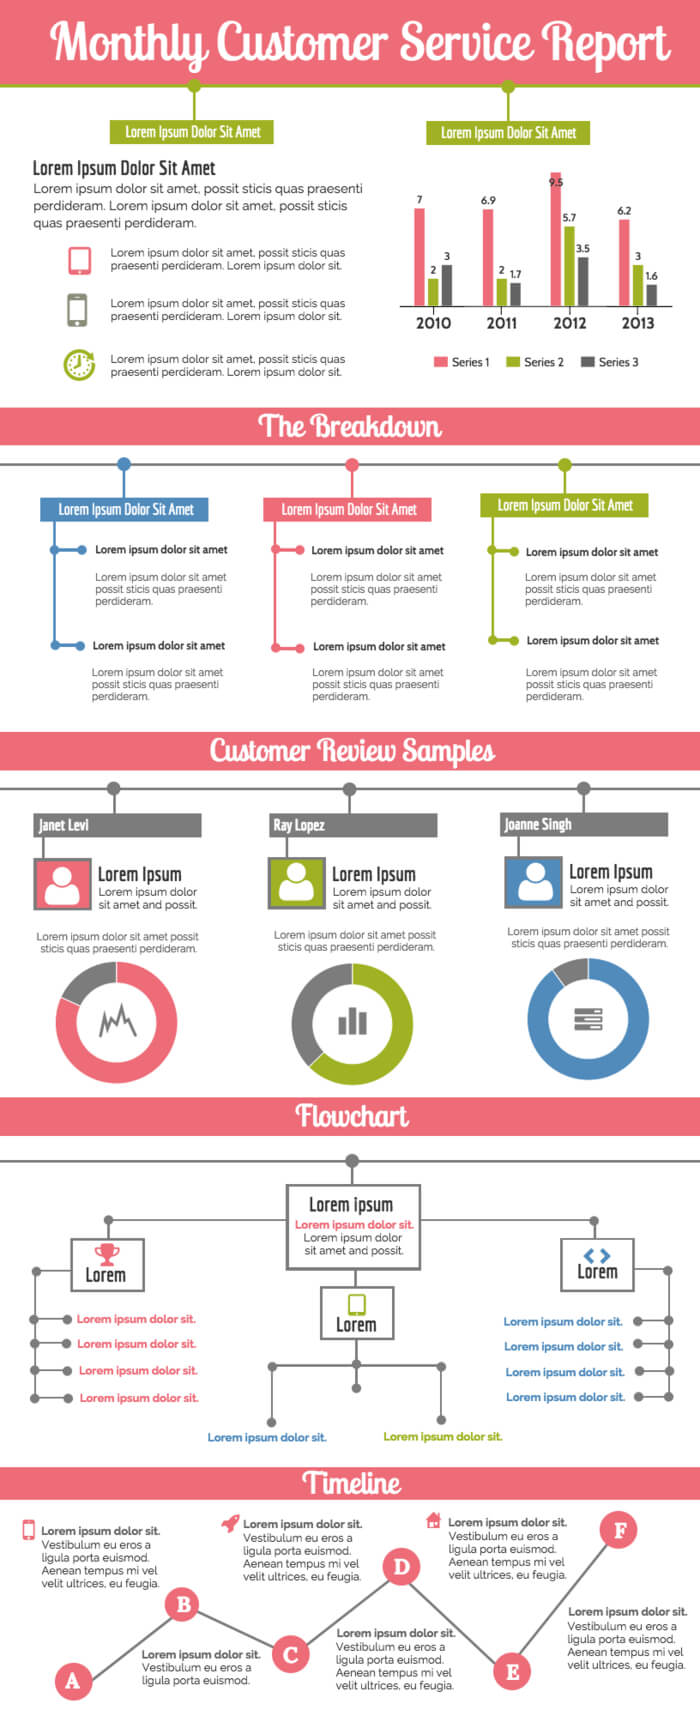 Monthly Customer Service Report Template - Venngage For Service Review Report Template